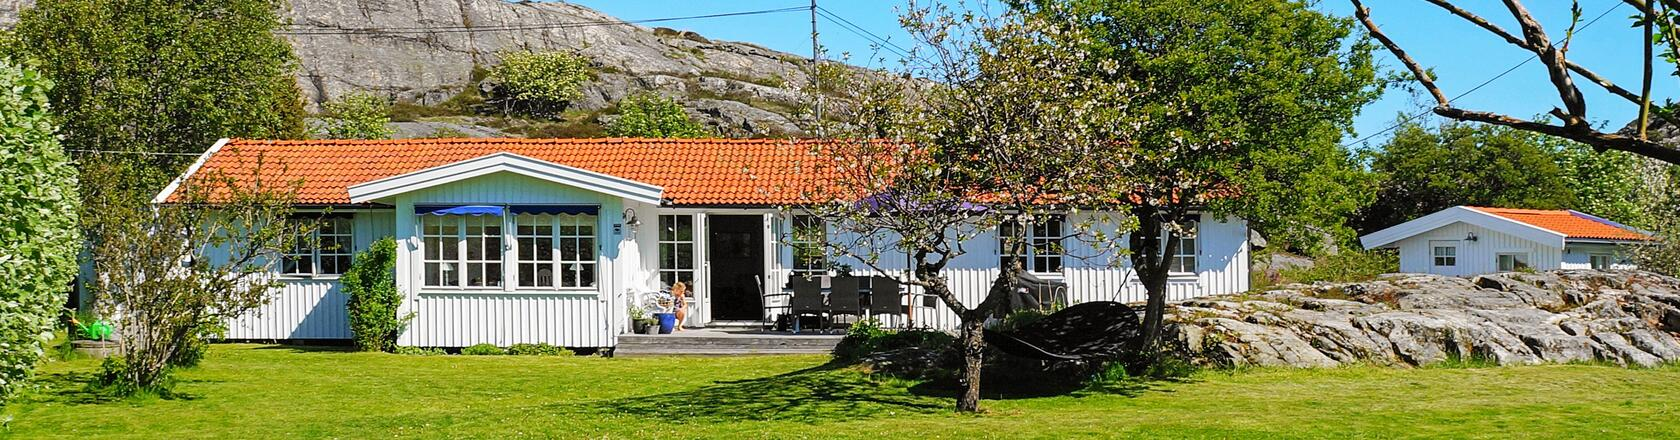 Rönnäng in Sweden - Rent a holiday home  with DanCenter